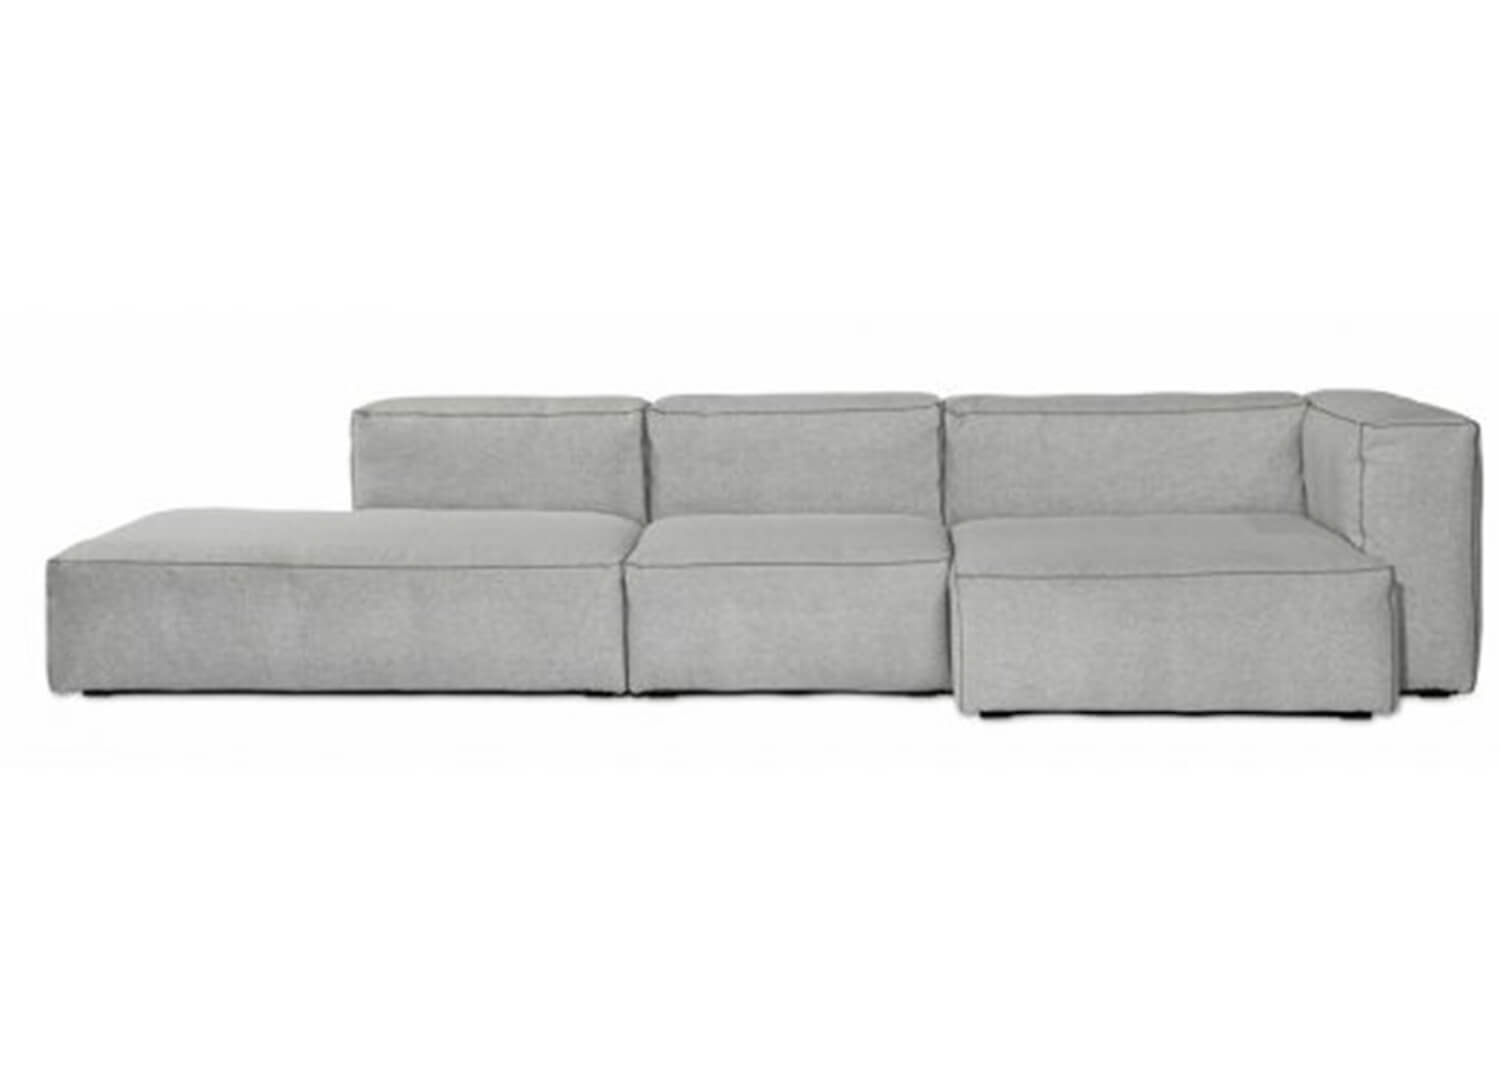 Mags Sofa by Hay | Cult